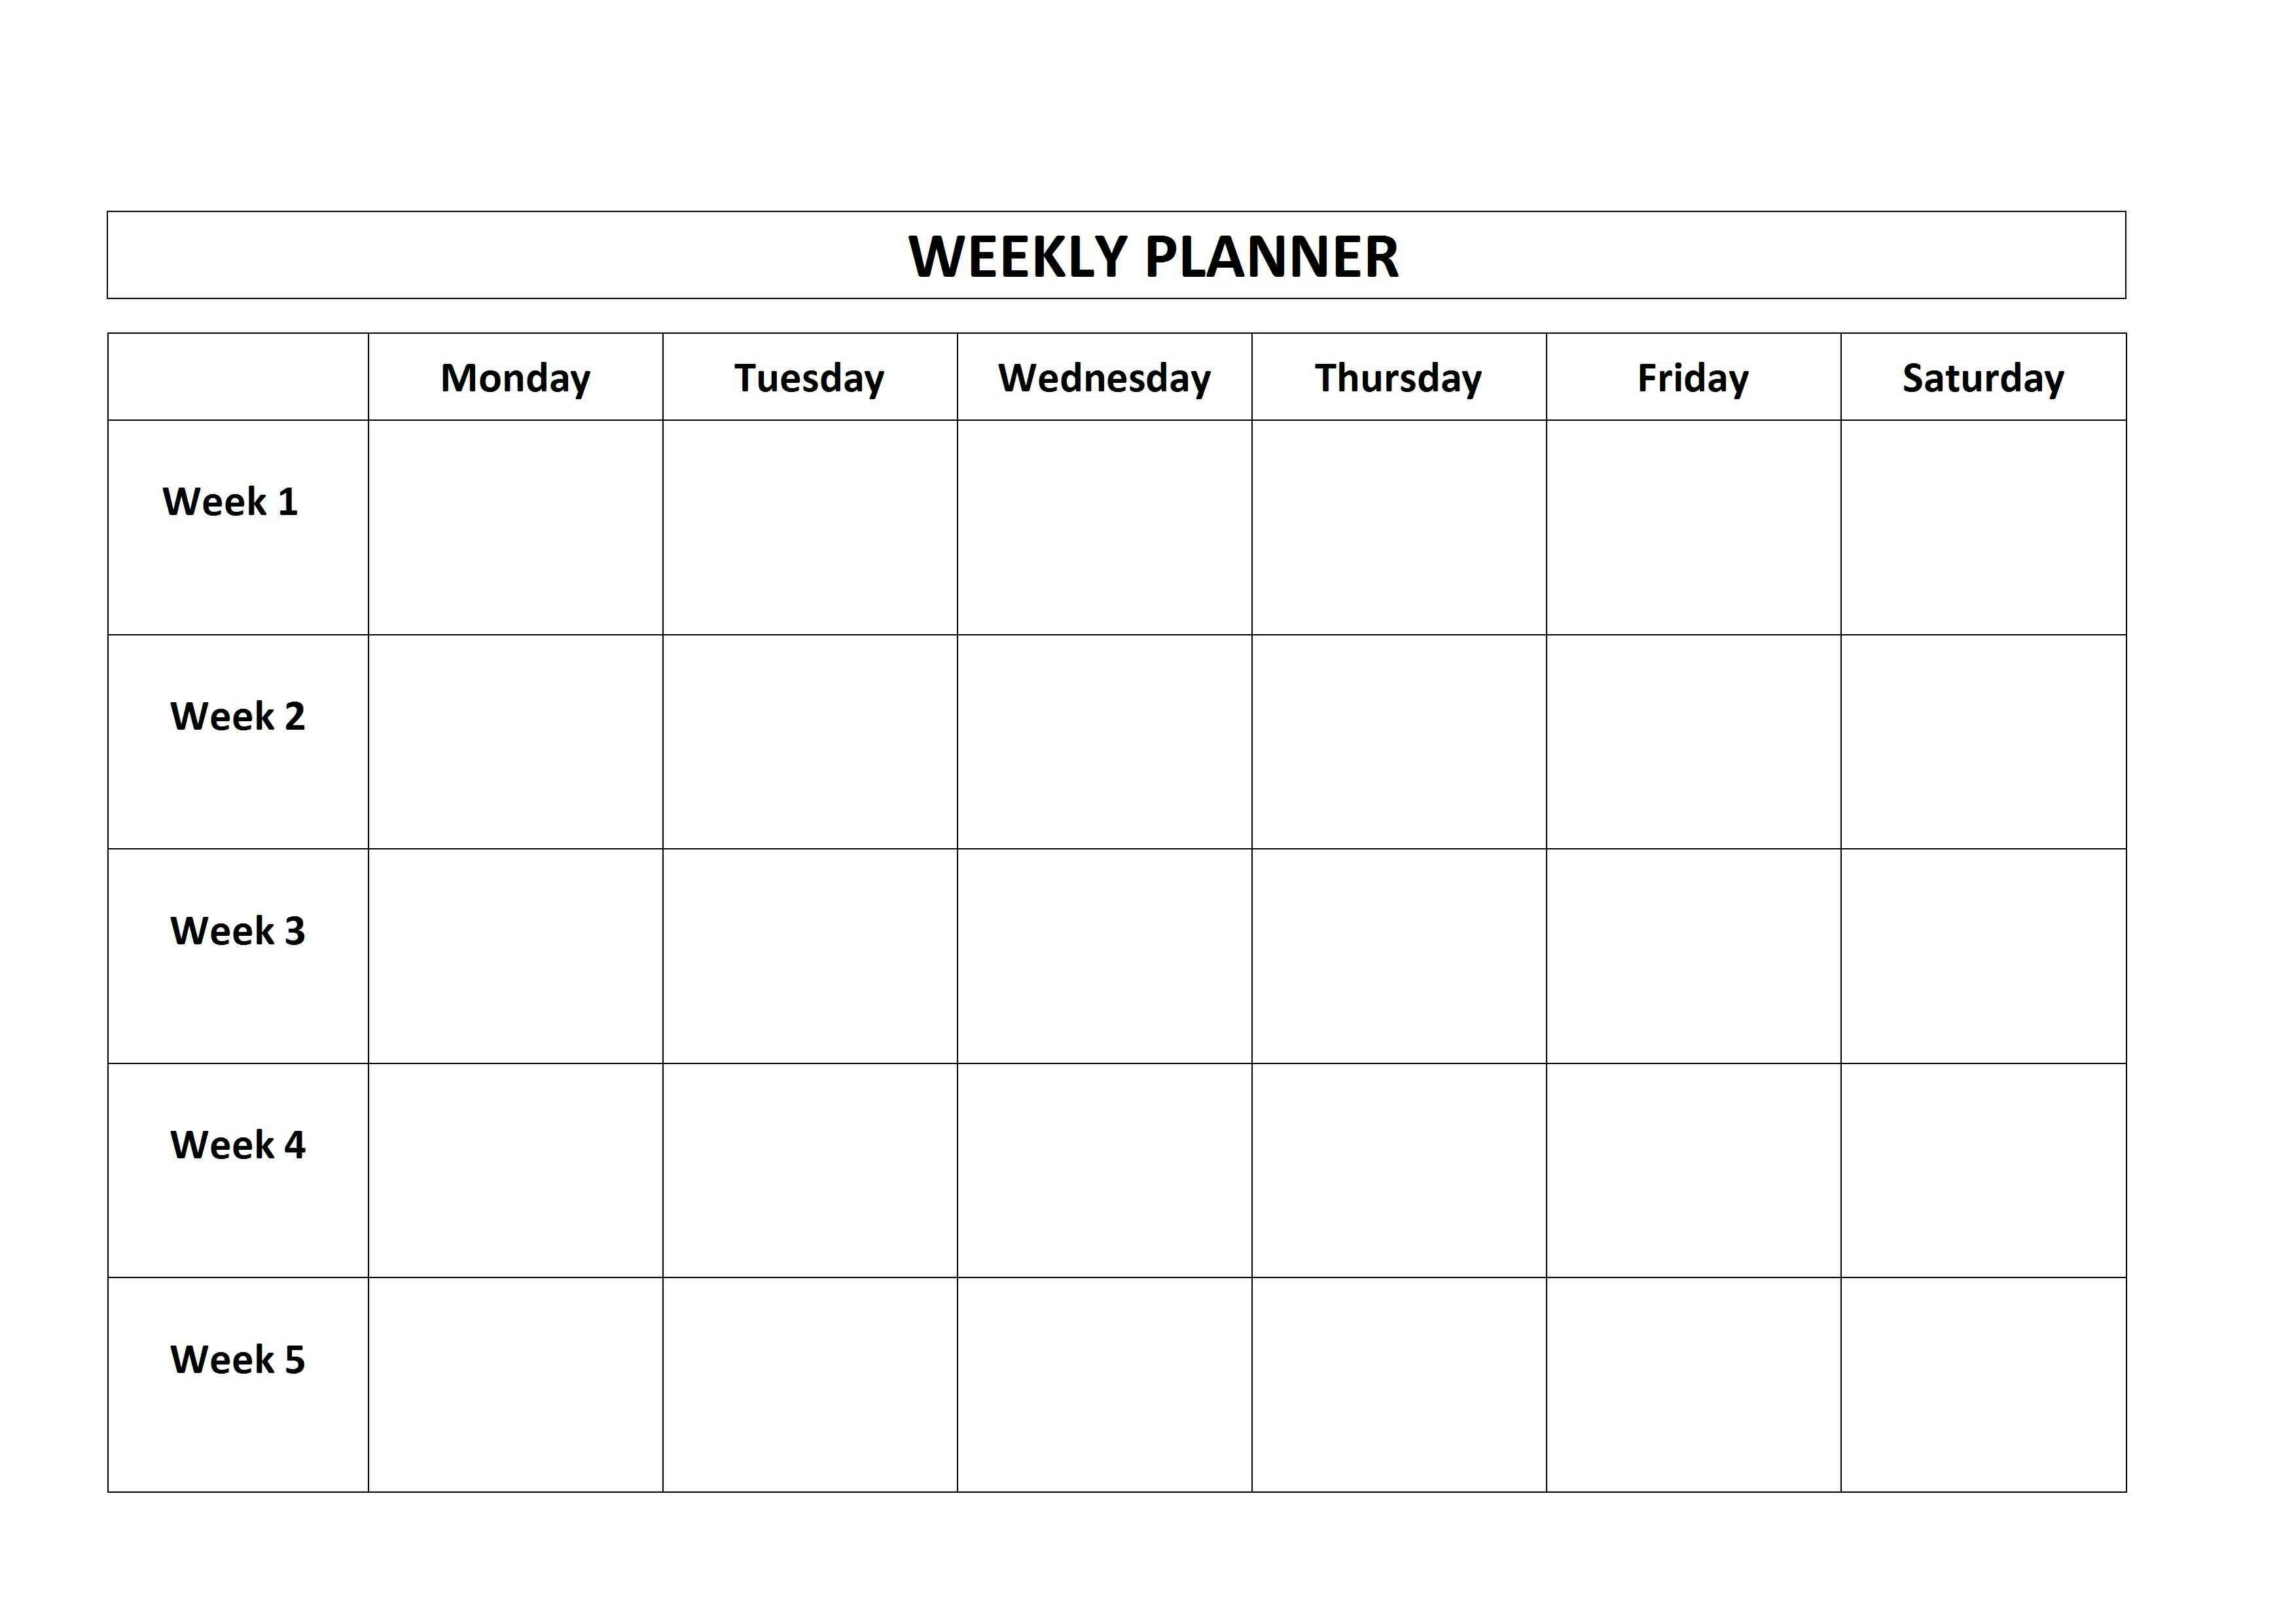 Free Printable Weekly Planner Monday Friday School Calendar On inside Monday Through Friday Planner Template